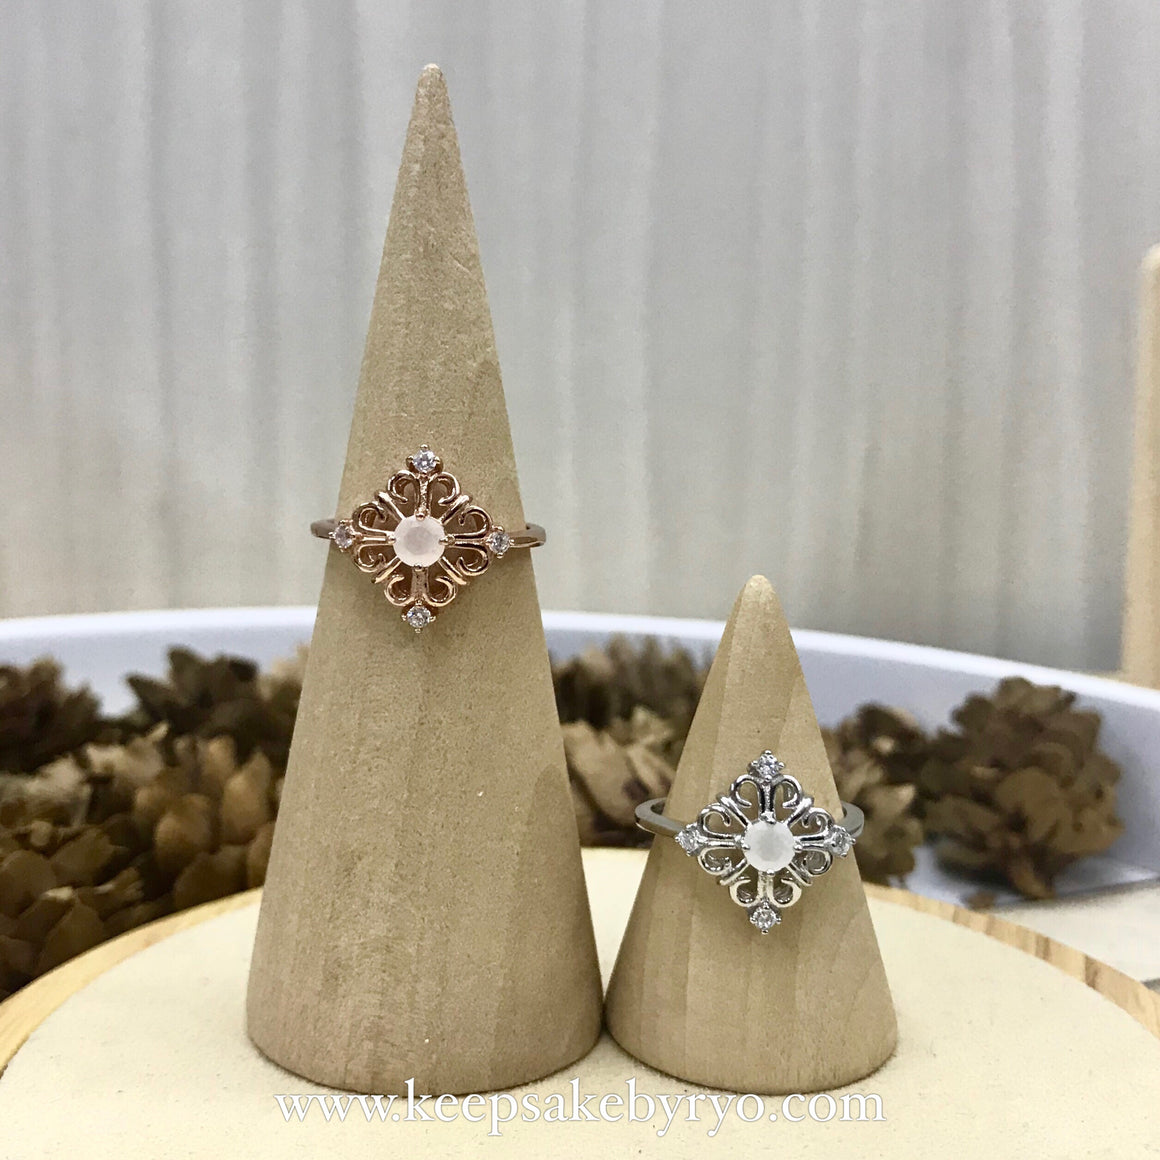 SOLITAIRE GOLD: SERENOH PERANAKAN RING WITH BREASTMILK STONE